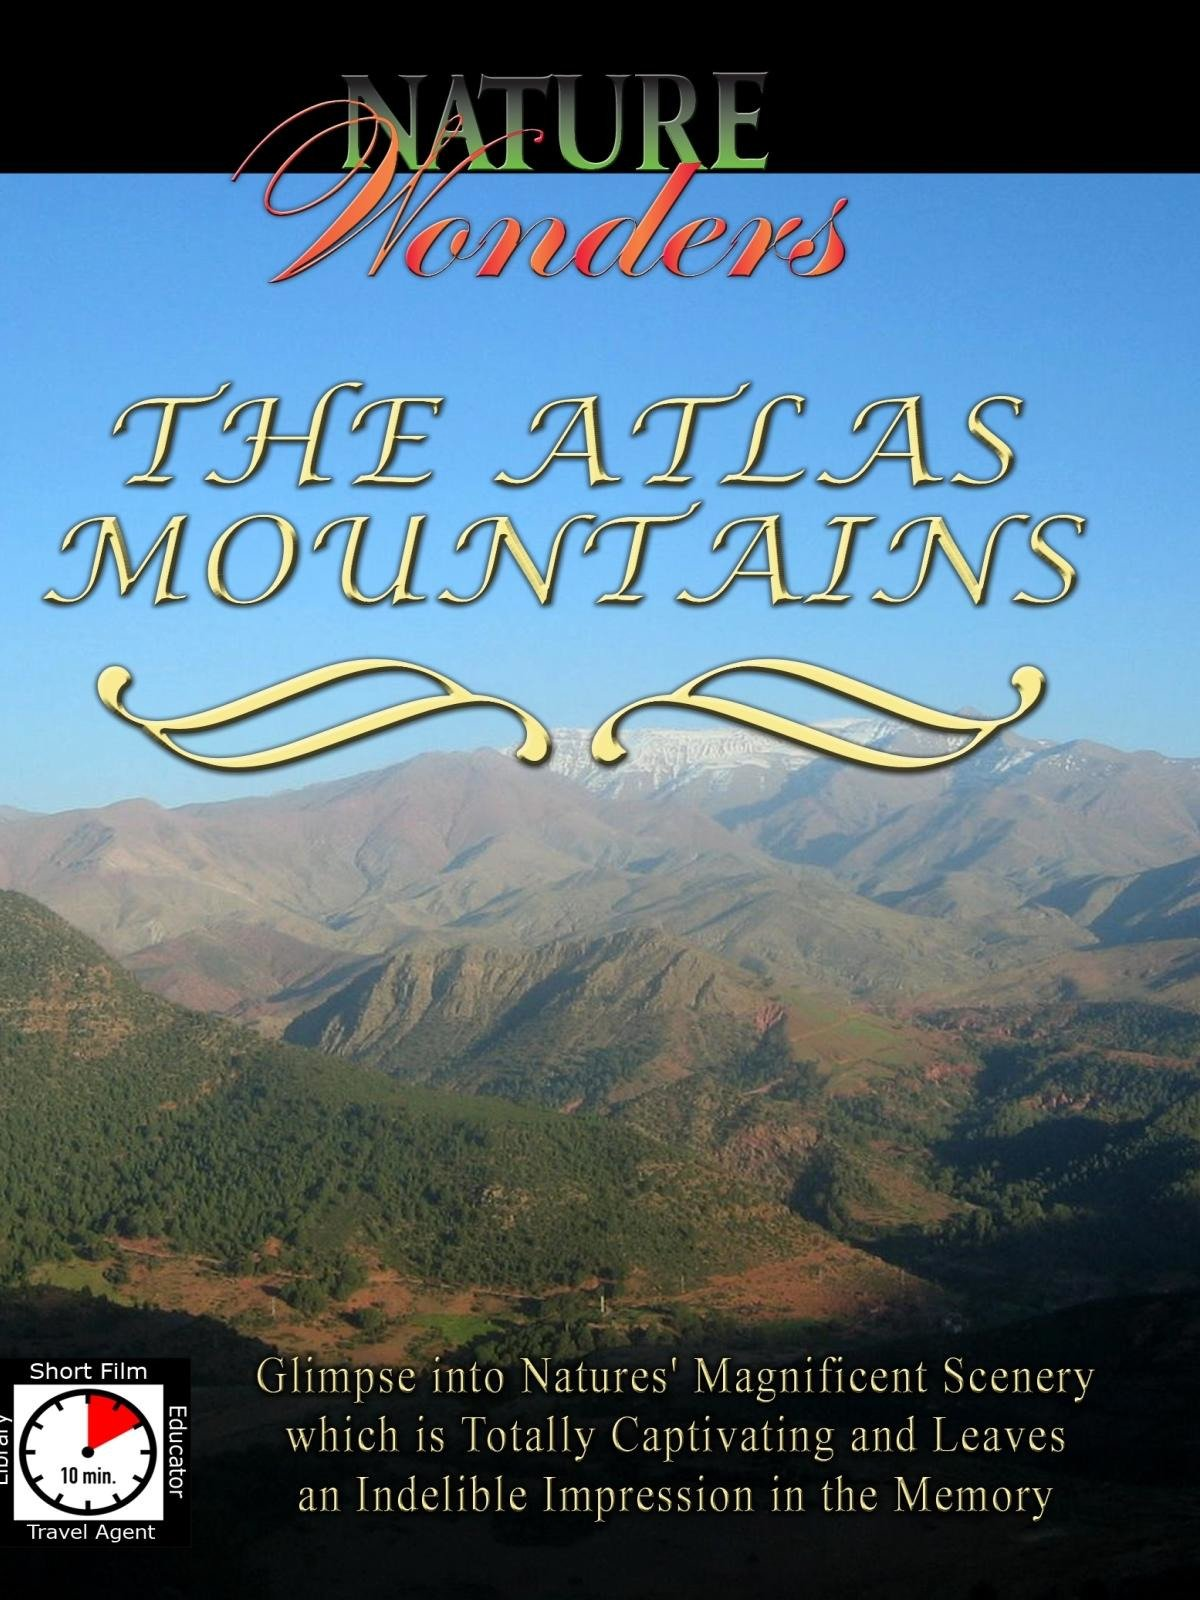 Nature Wonders - The Atlas Mountains - Morocco - Tunisia - Algeria on Amazon Prime Instant Video UK